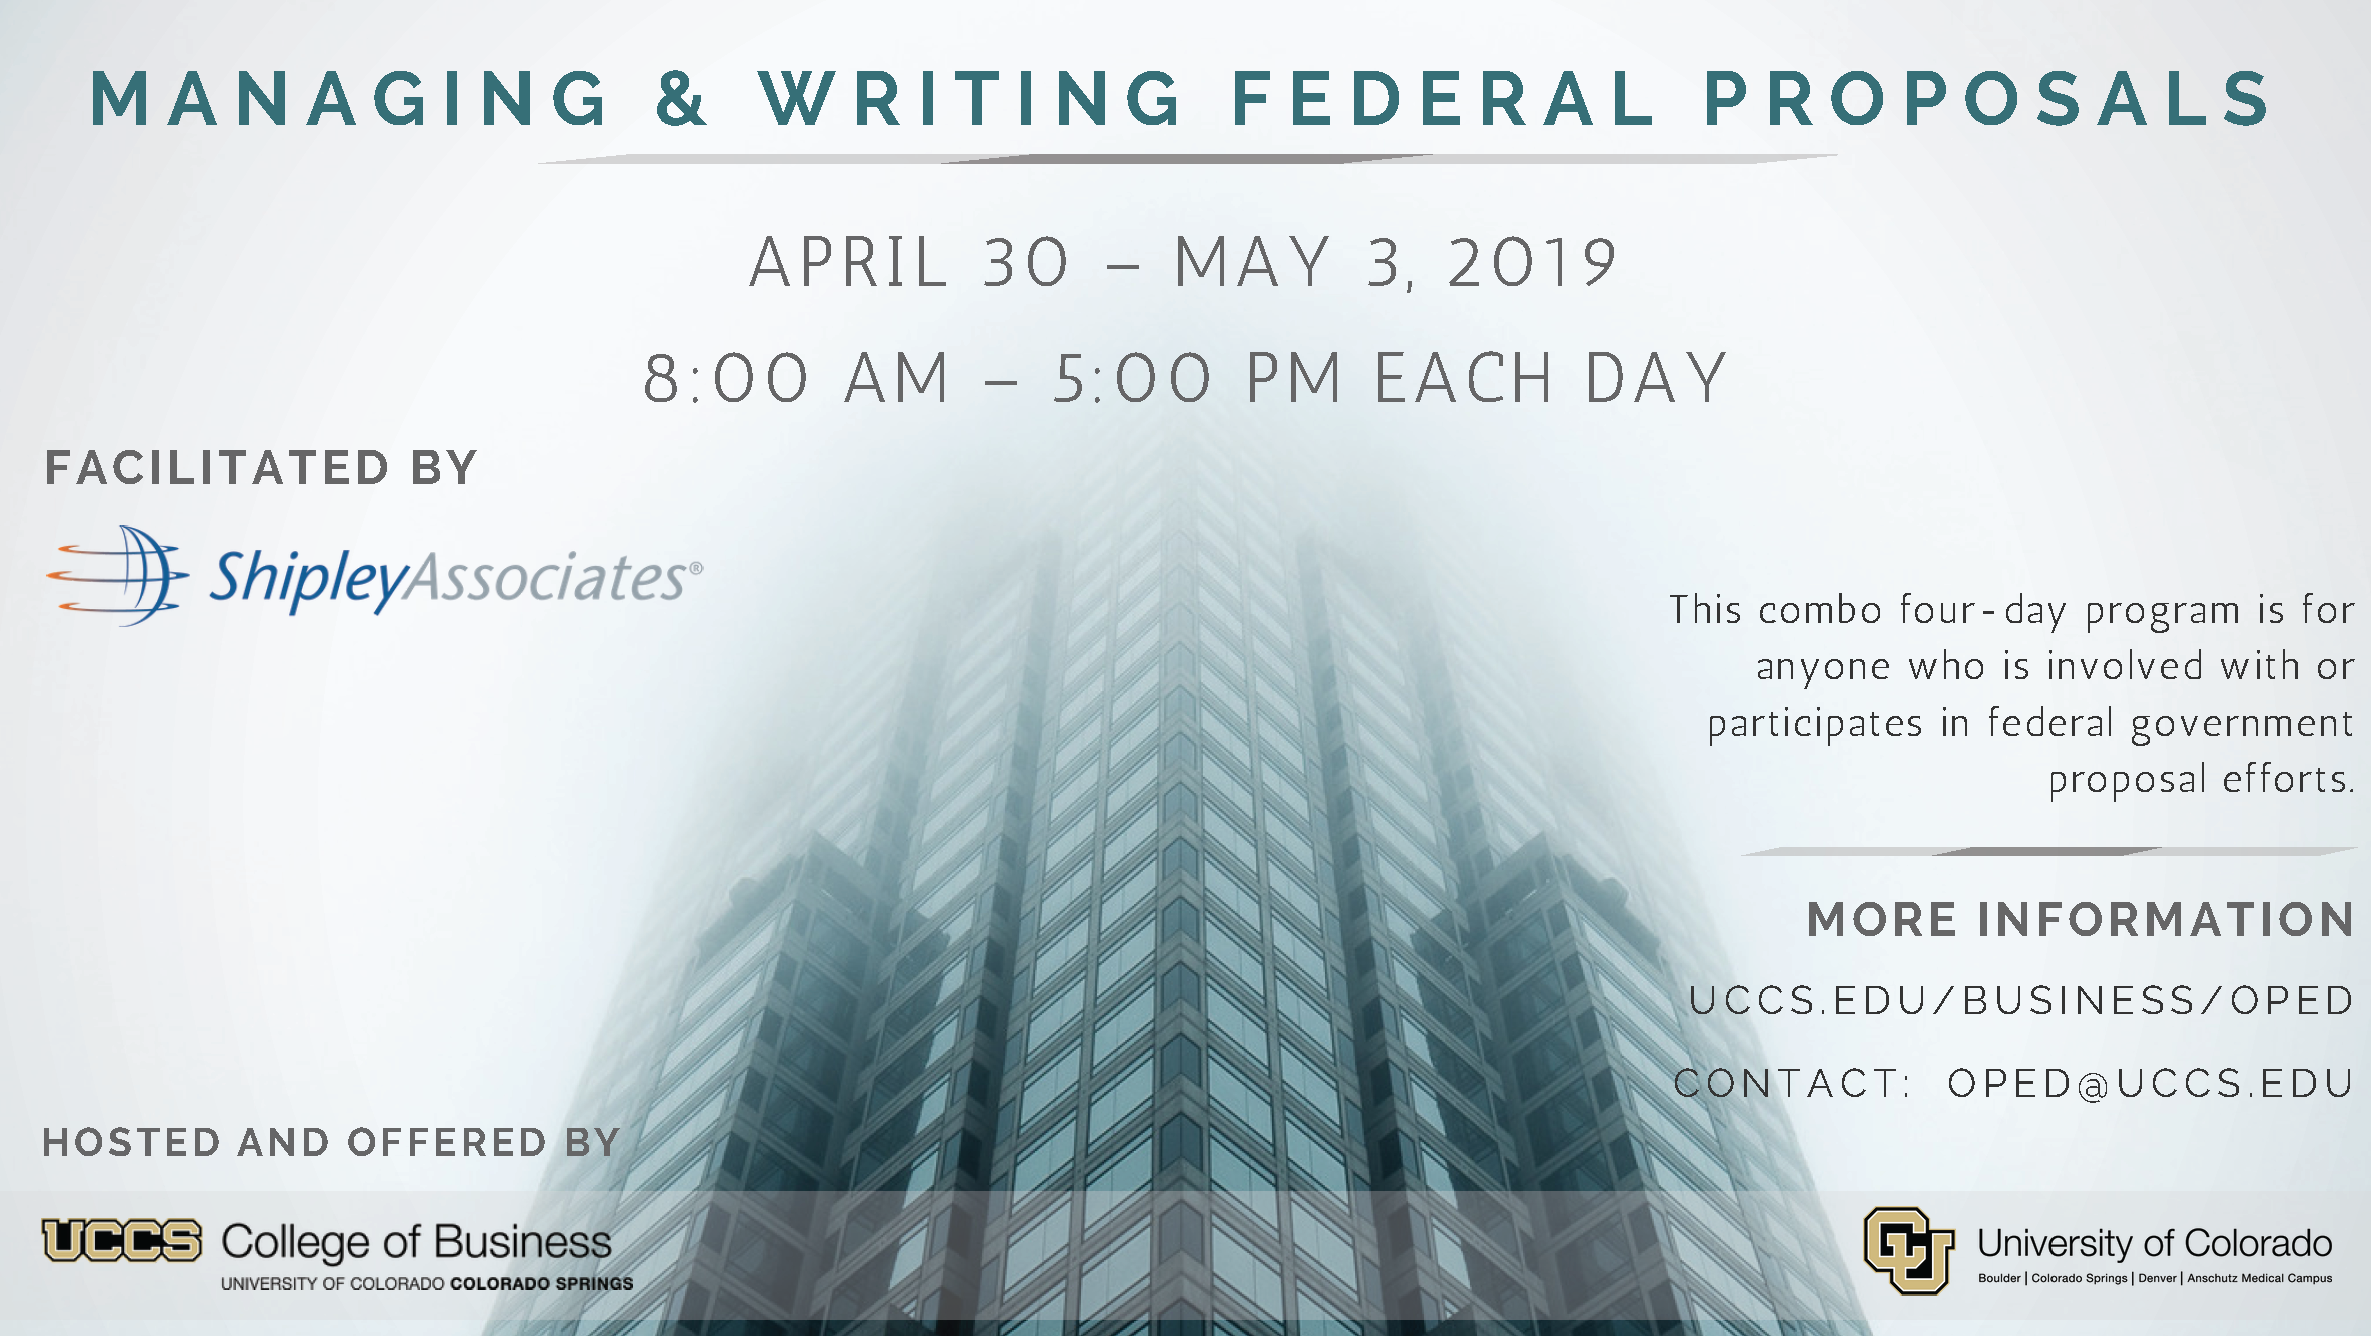 Managing & Writing Federal Proposals (Colorado Springs)